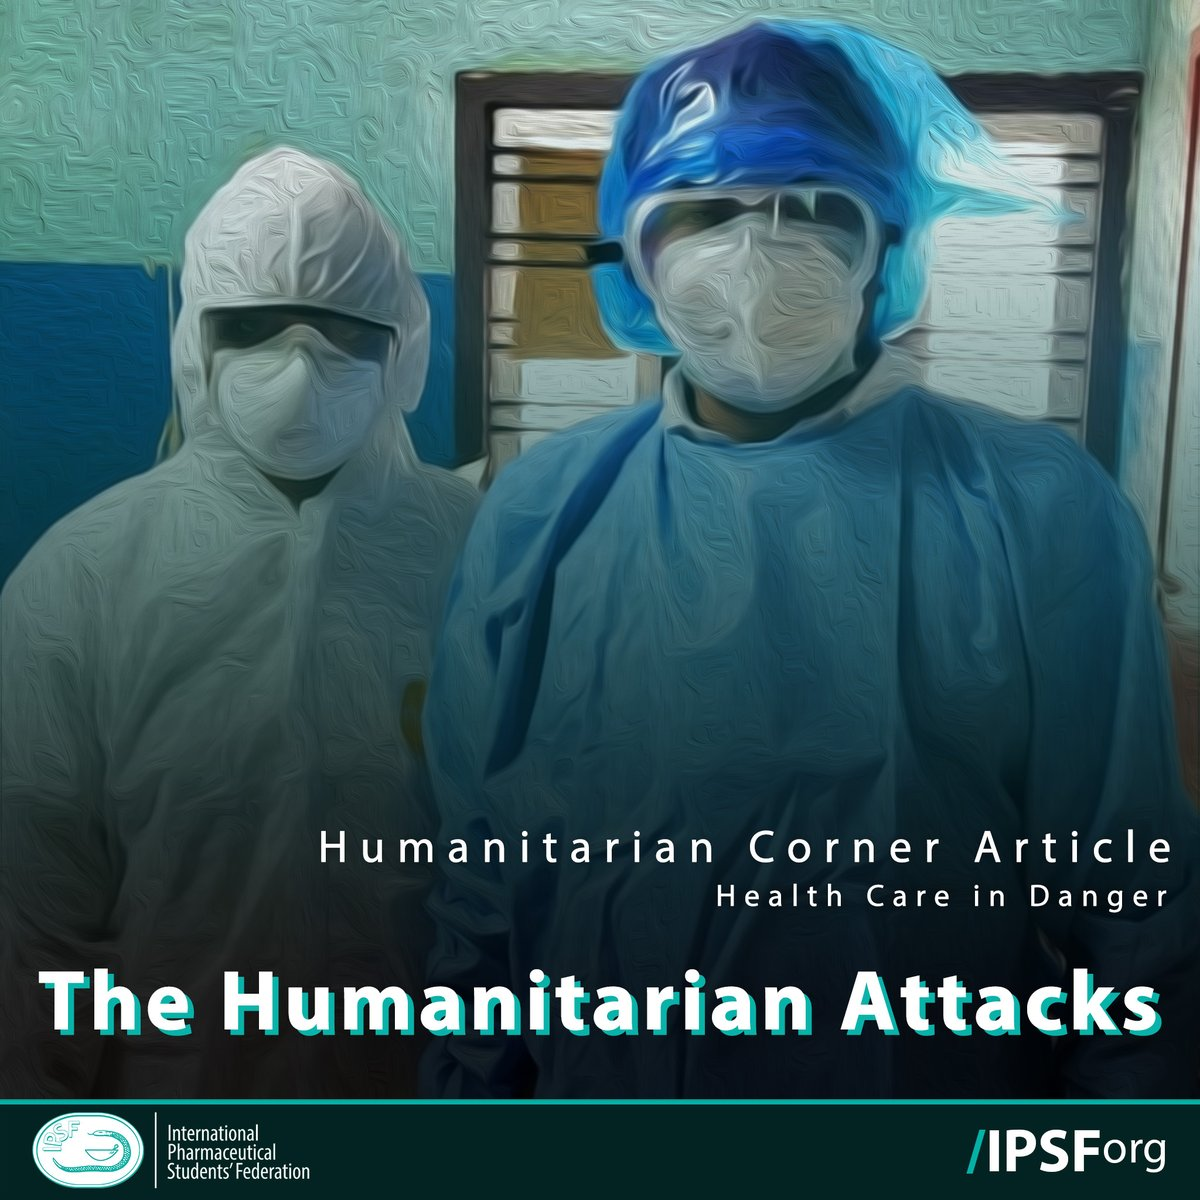 Read more about the challenges faced by the humanitarian workers amidst the COVID-19 pandemic on our recent Humanitarian Corner Article.  https://t.co/CEWgLrev7L   #IPSForg #HumanitarianCorner #OneWorldOneHumanity #WorldHumanitarianDay https://t.co/BoGJA2Daee